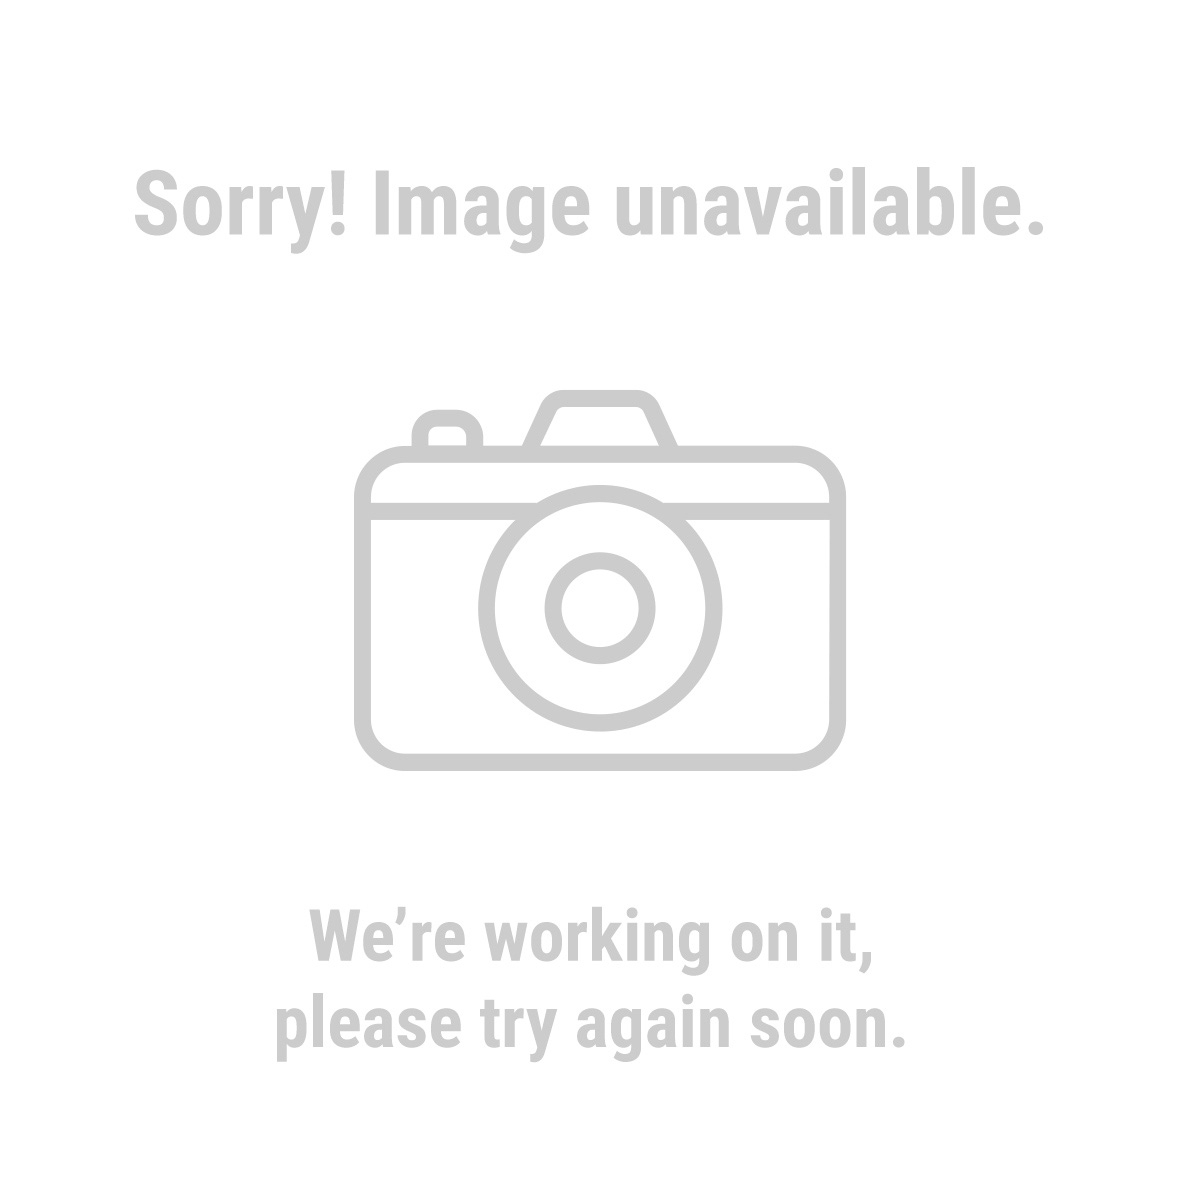 Warrior 68457 100 Piece Security Bit Set